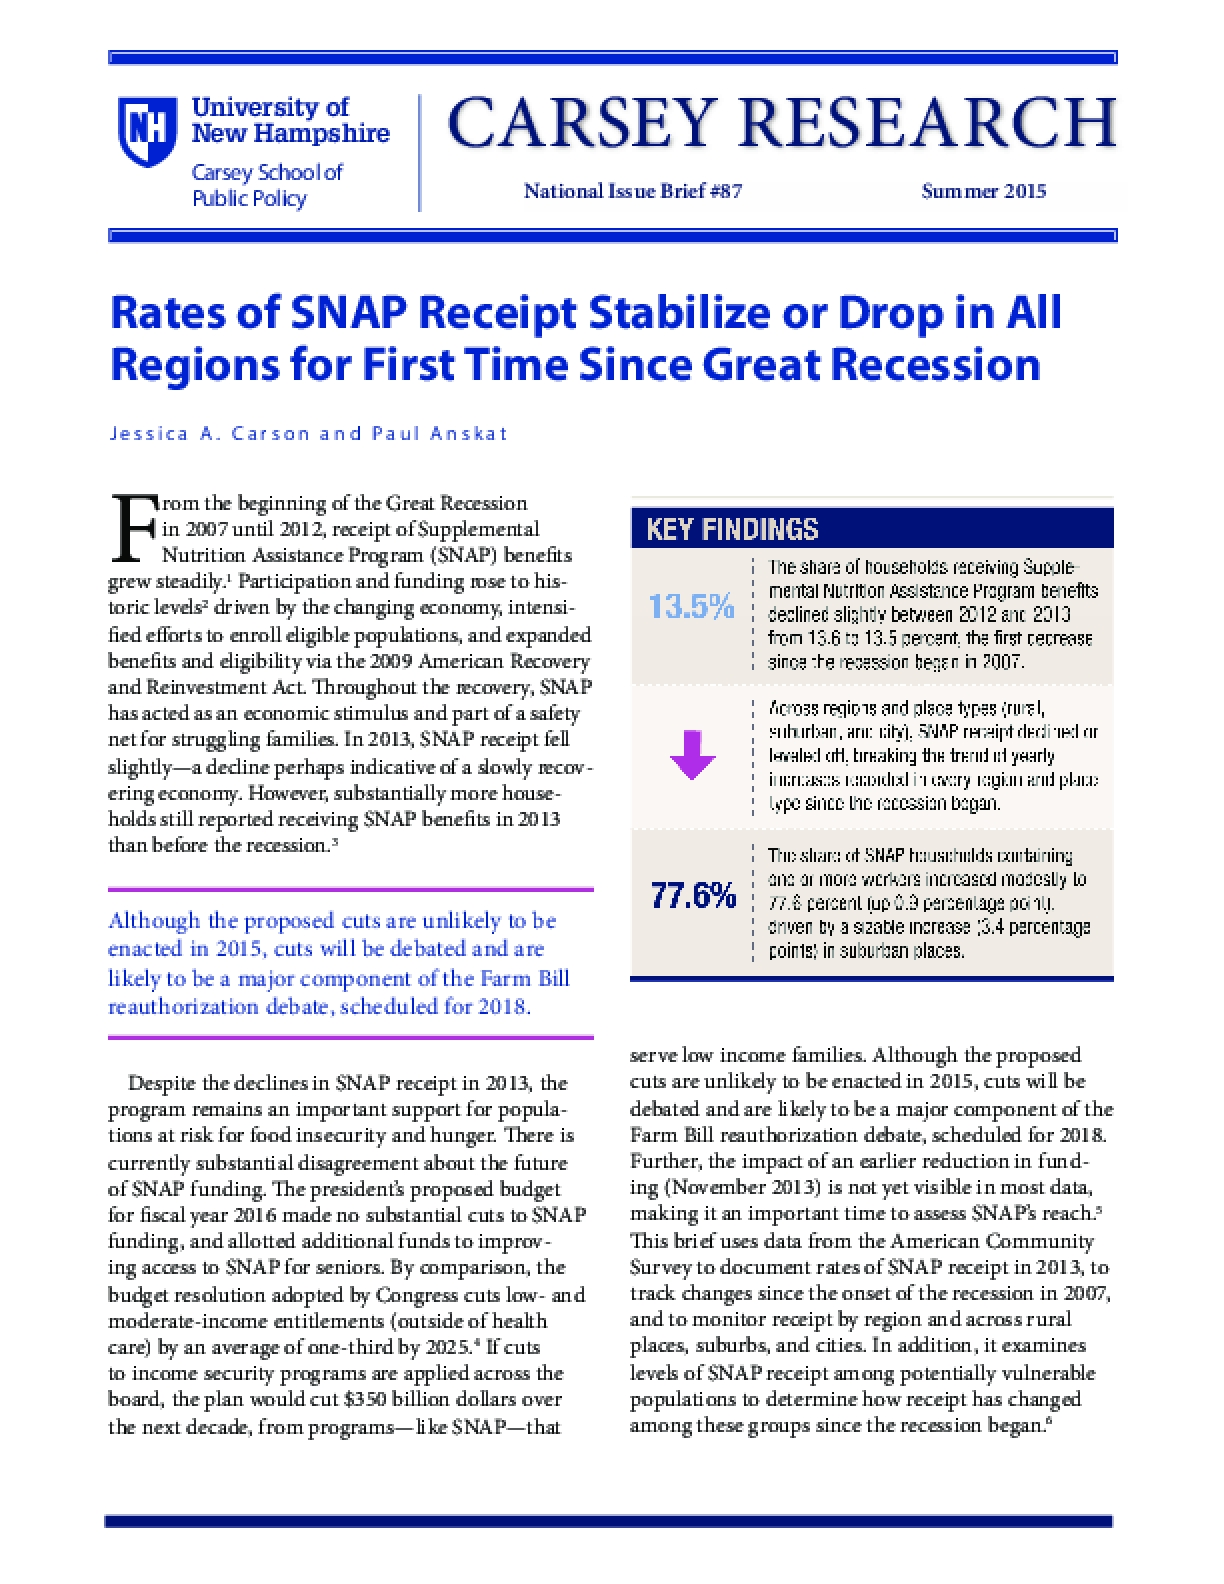 Rates of SNAP Receipt Stabilize or Drop in All Regions for First Time Since Great Recession